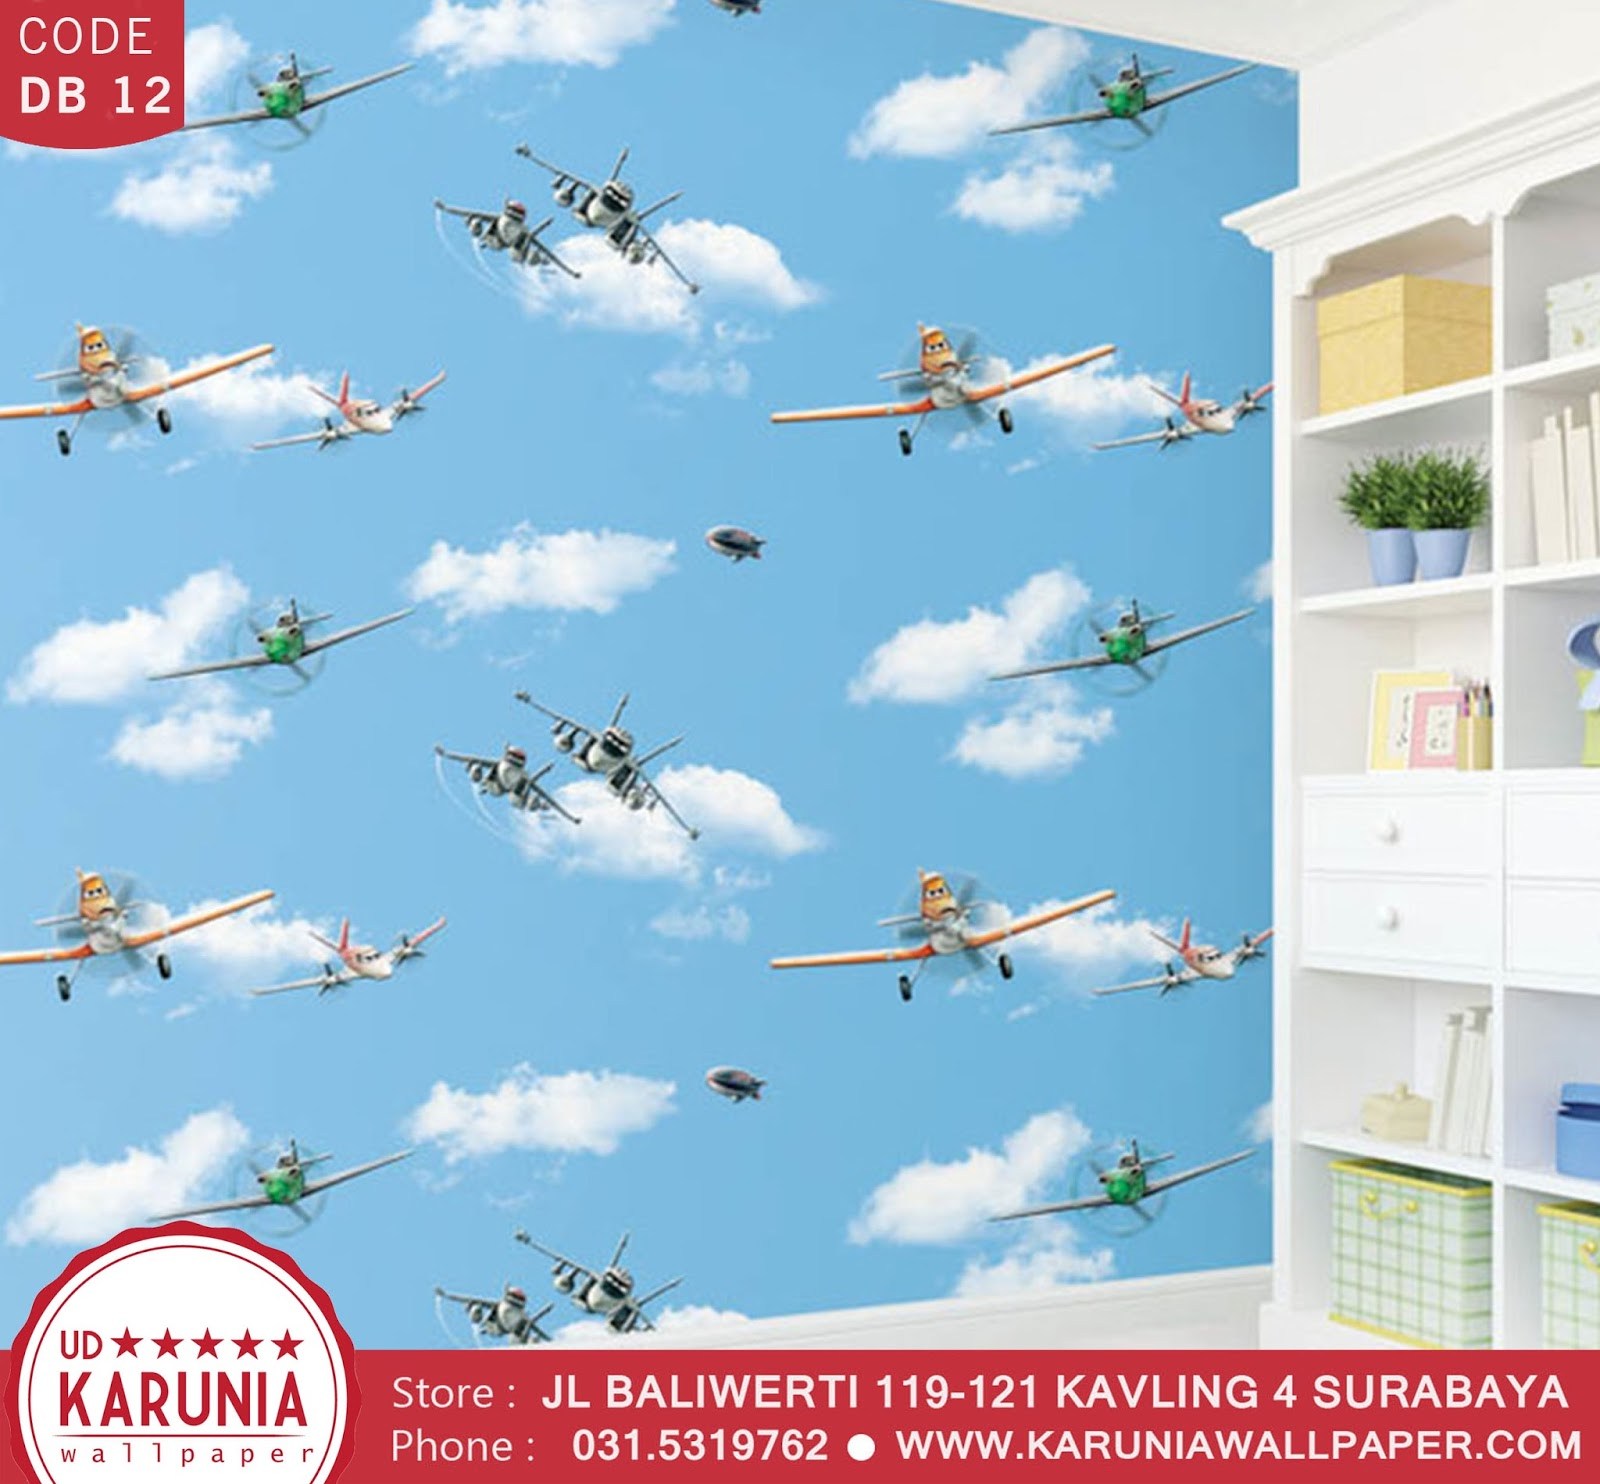 jual wallpaper karuniawallpaper disney